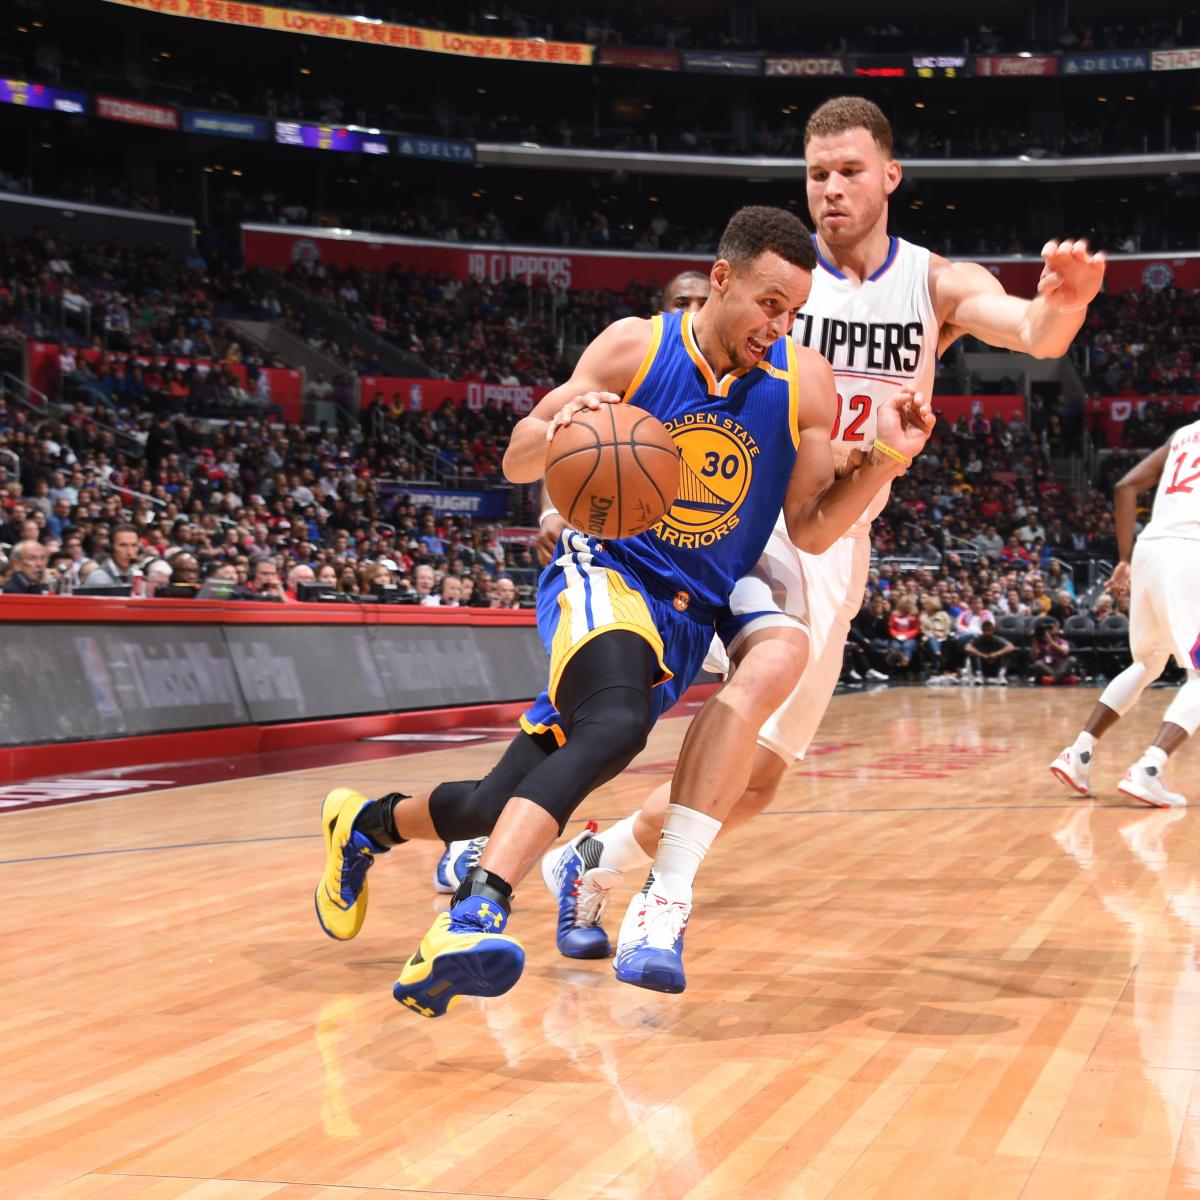 Warriors Full Game Highlights Game 3: Warriors Vs. Clippers: Score, Highlights, Reaction From